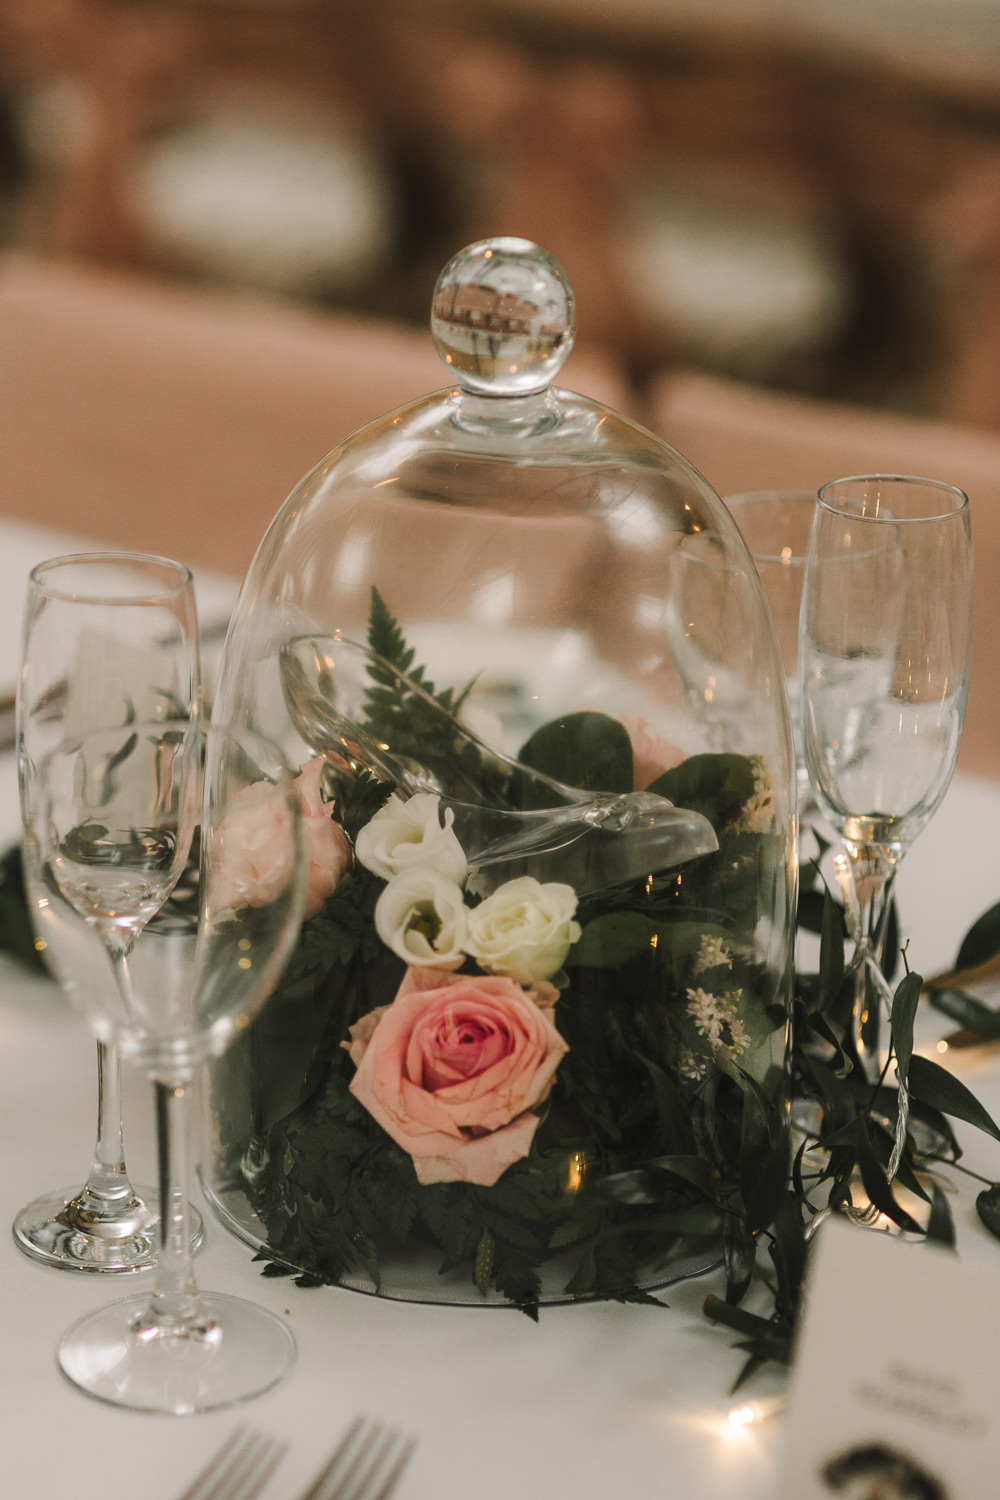 Bell Jar Flowers Table Decor Centrepiece Wellbeing Farm Wedding Anna Wood Photography